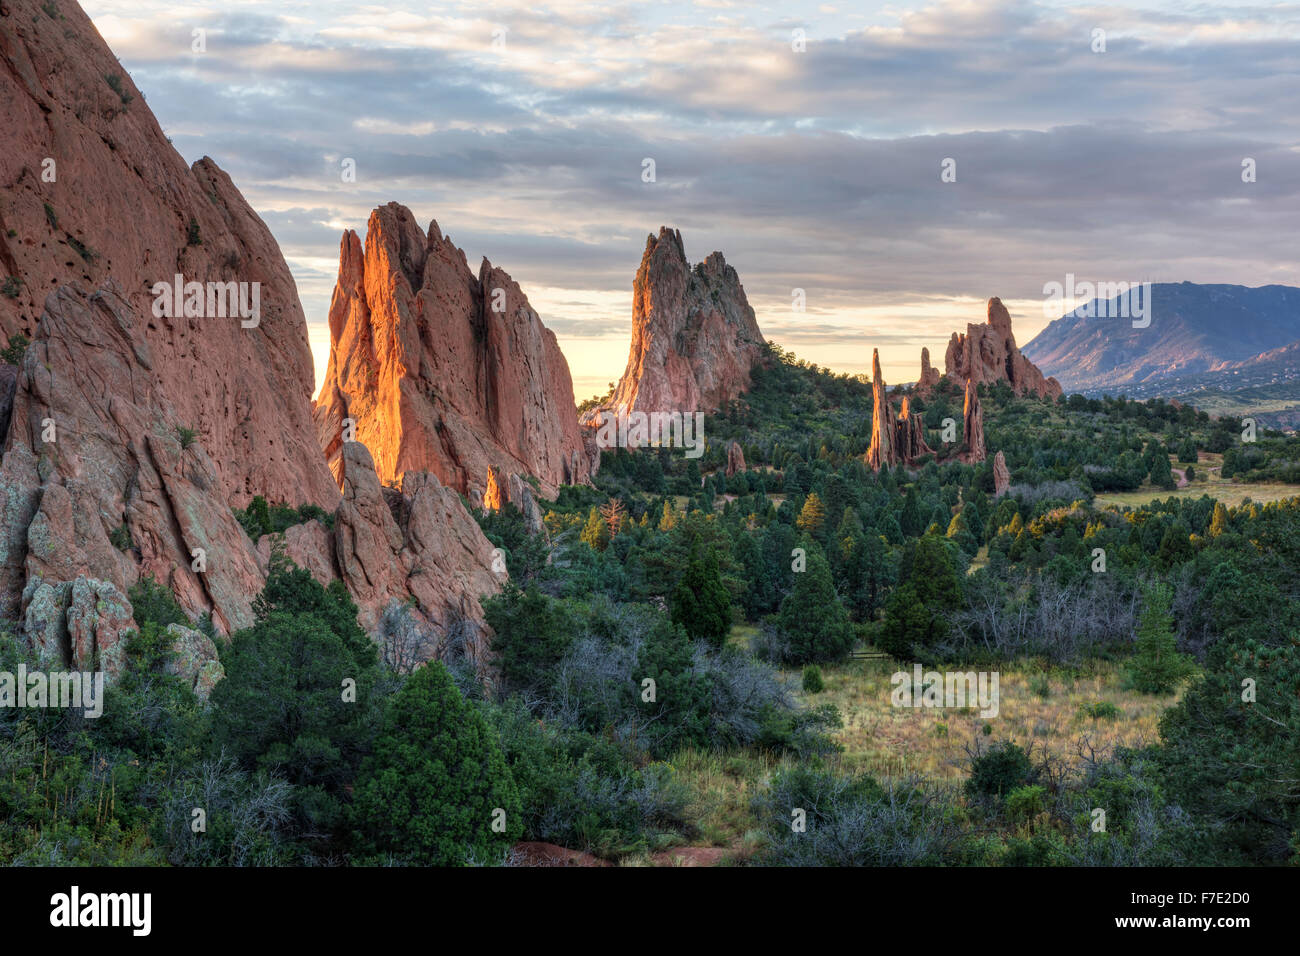 Sunrise on the red rocks formations of the Garden of the Gods in Colorado Springs, Colorado Stock Photo